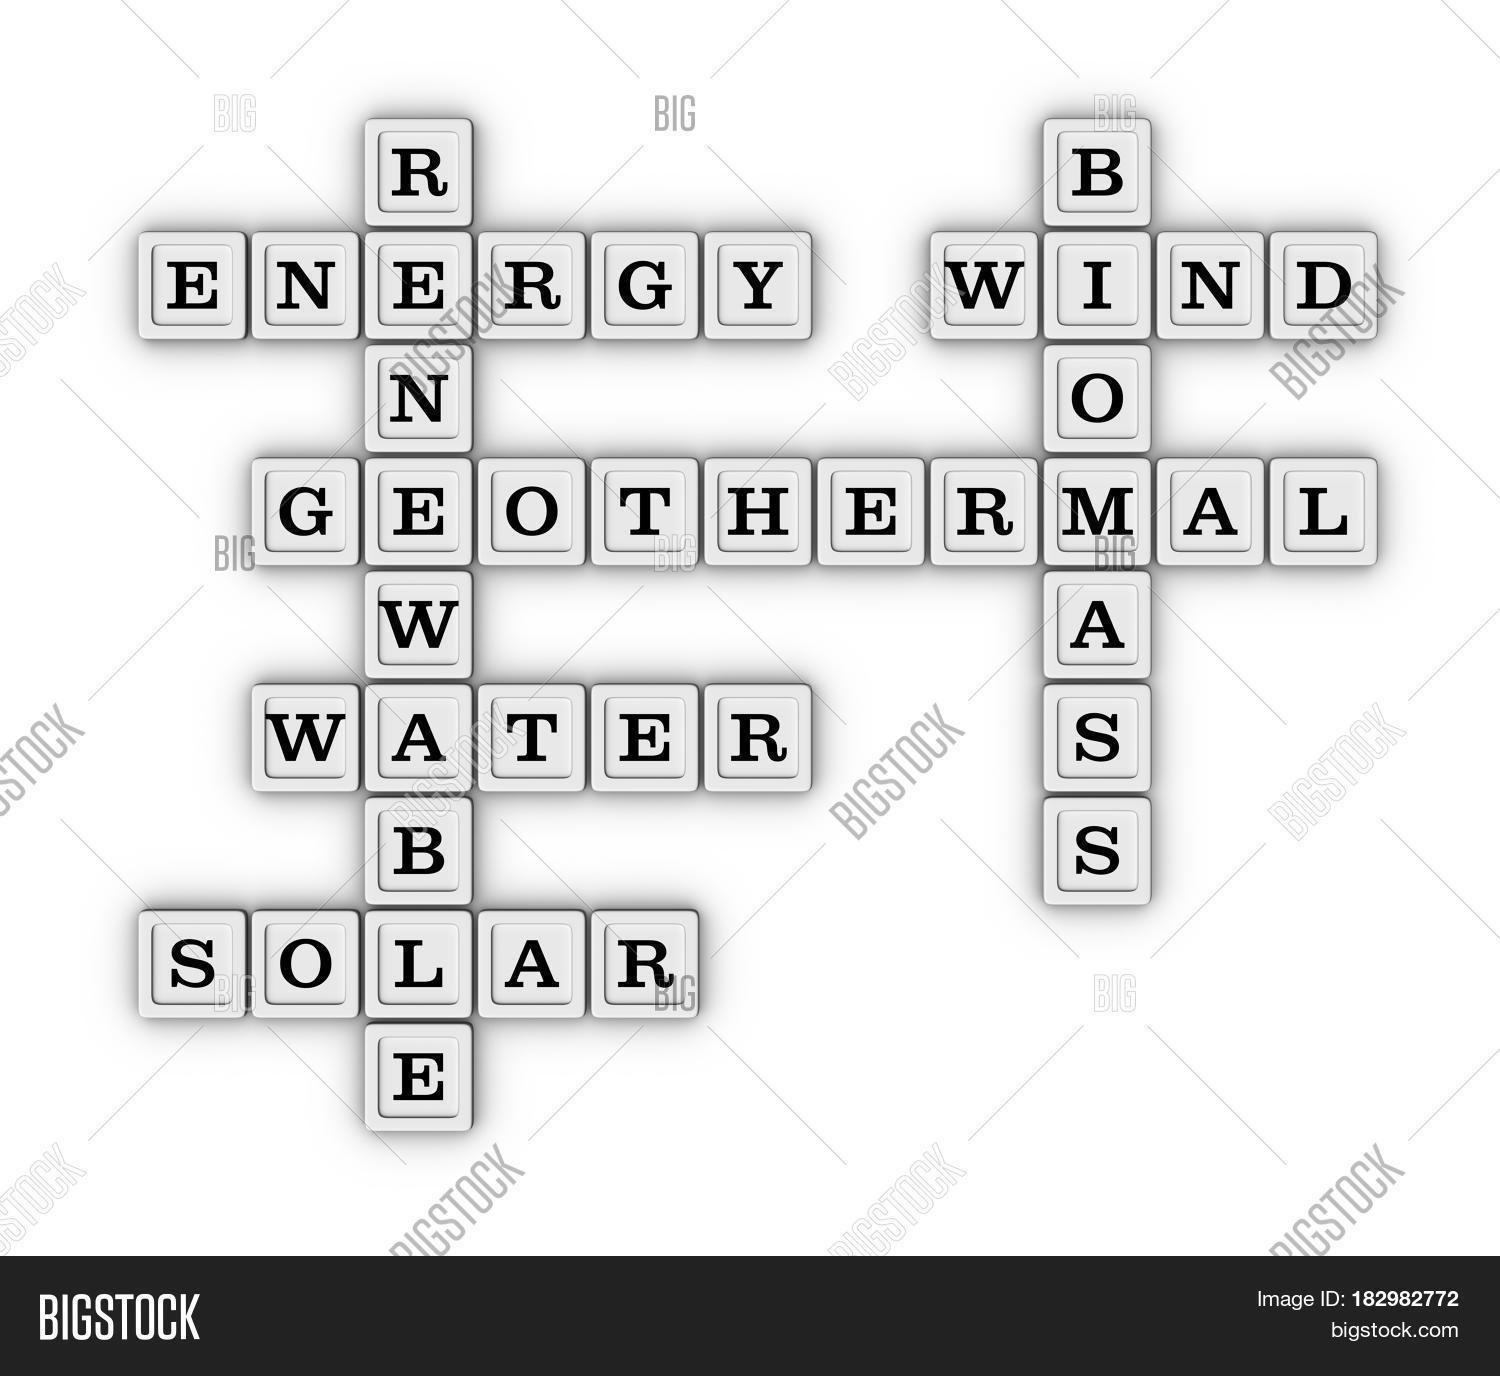 Renewable Green Energy Crossword Puzzle Save Earth Concept 3D Illustration Isolated On White Background